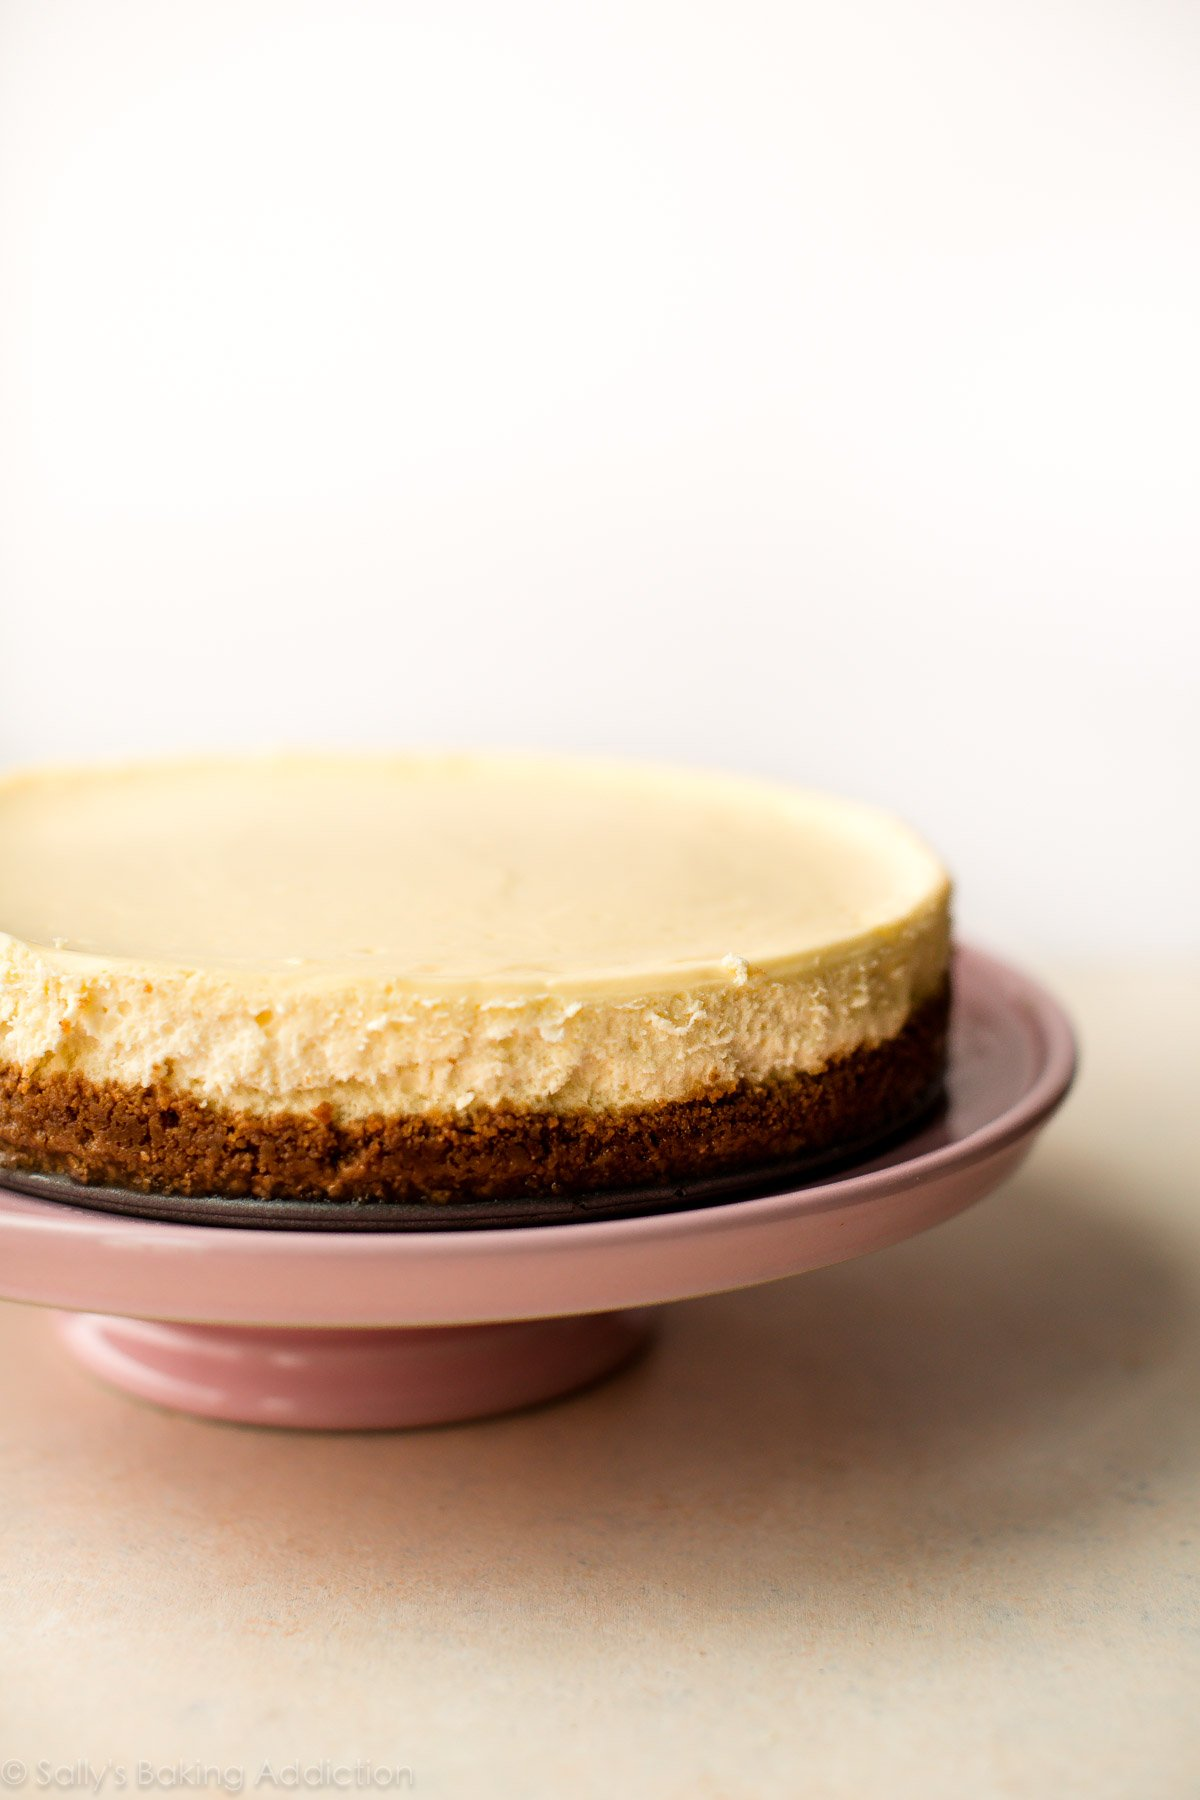 Forum on this topic: How to Freeze Cheesecake, how-to-freeze-cheesecake/